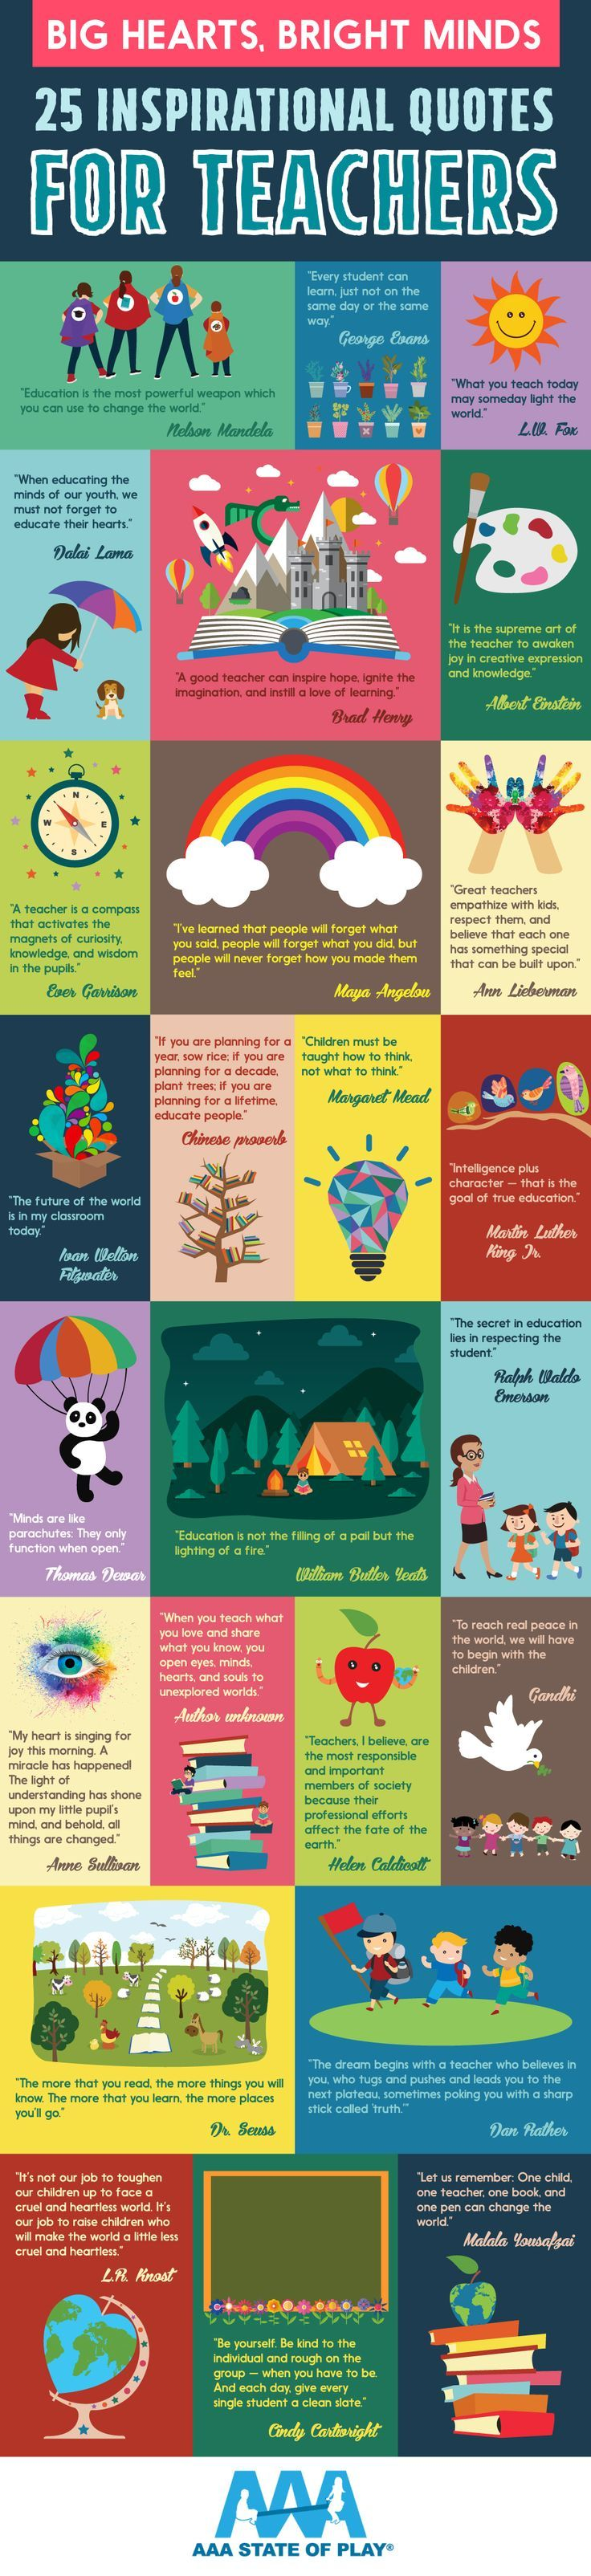 25 Inspirational Quotes for Teachers                                                                                                                                                                                 More